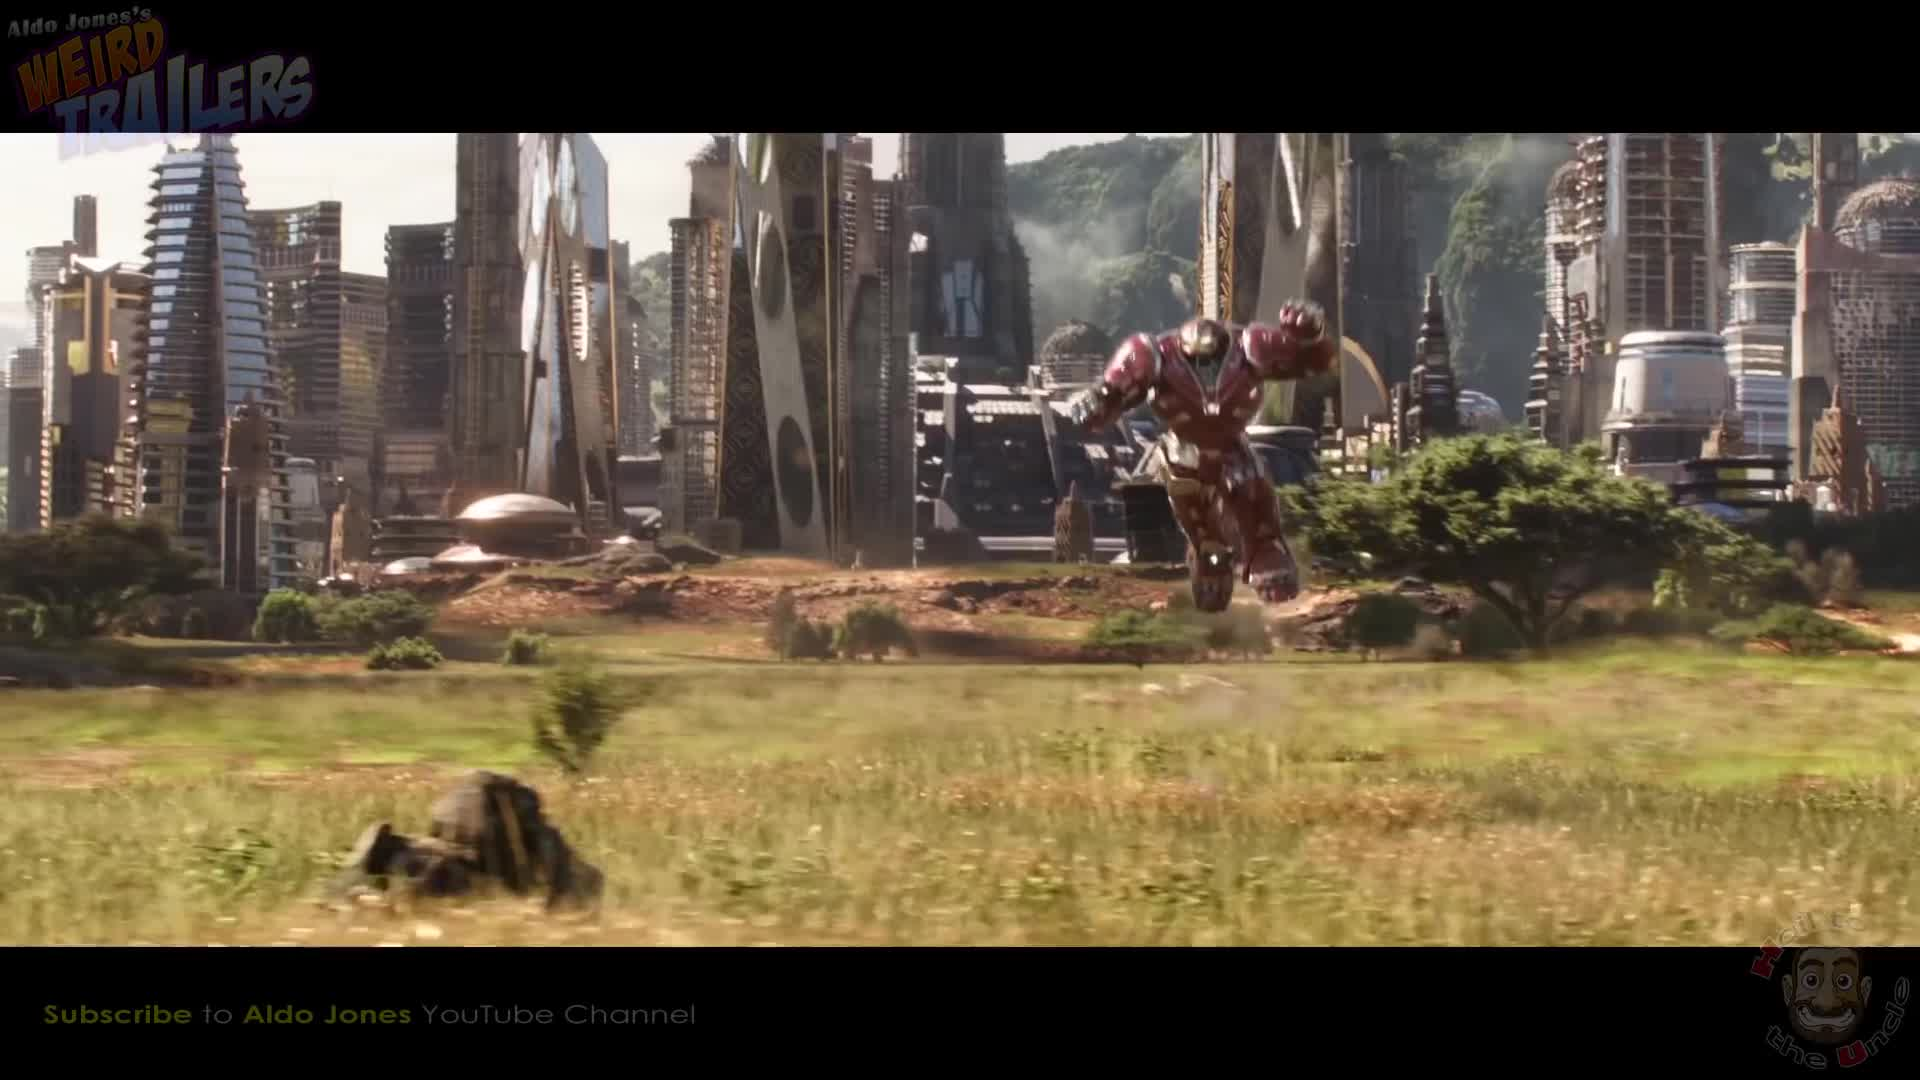 aldo jones weird trailer, avengers infinity war full movie, avengers infinity war international trailer, avengers infinity war theme, avengers infinity war trailer 2, avengers infinity war trailer 4k, avengers infinity war weird trailer, infinity war aldo jones, infinity war trailer 2, infinity war weird trailer, Hey Mark Ruffulo Huh GIFs